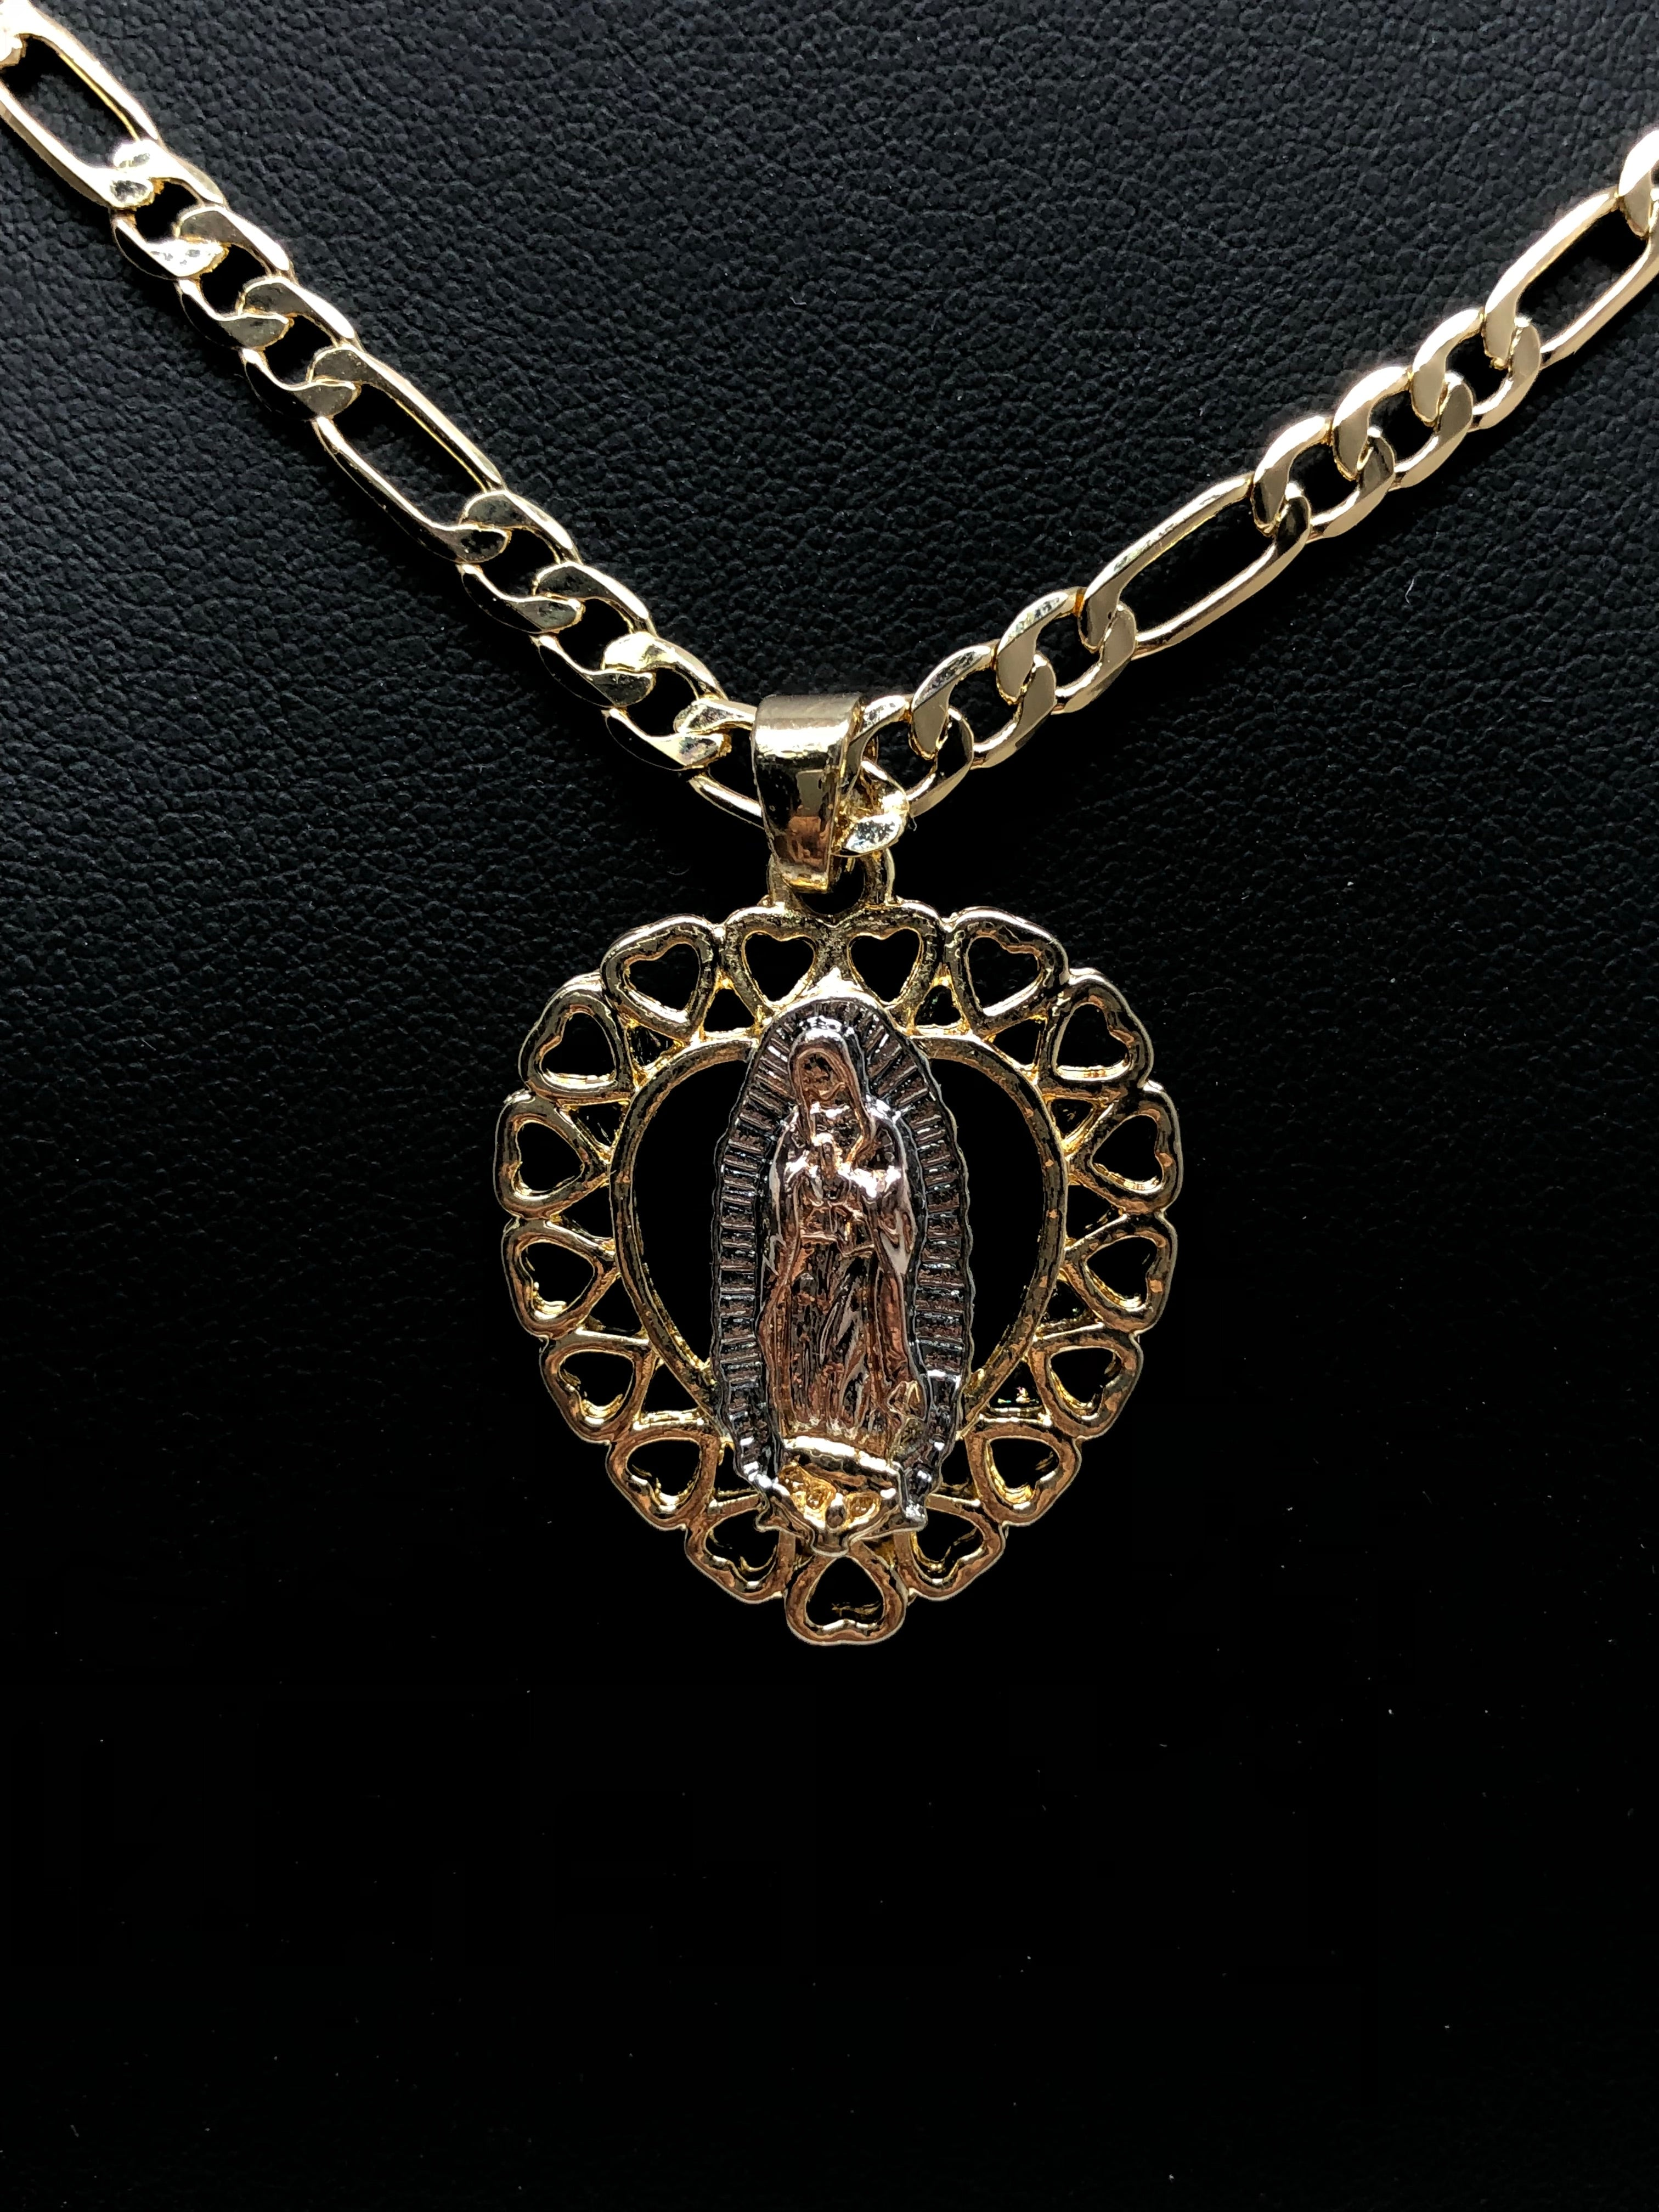 "Gold Plated Tri-Color Virgin Mary Heart Pendant Necklace 24"" Virgen de Guadalupe Medalla Tres Colores Corazon"